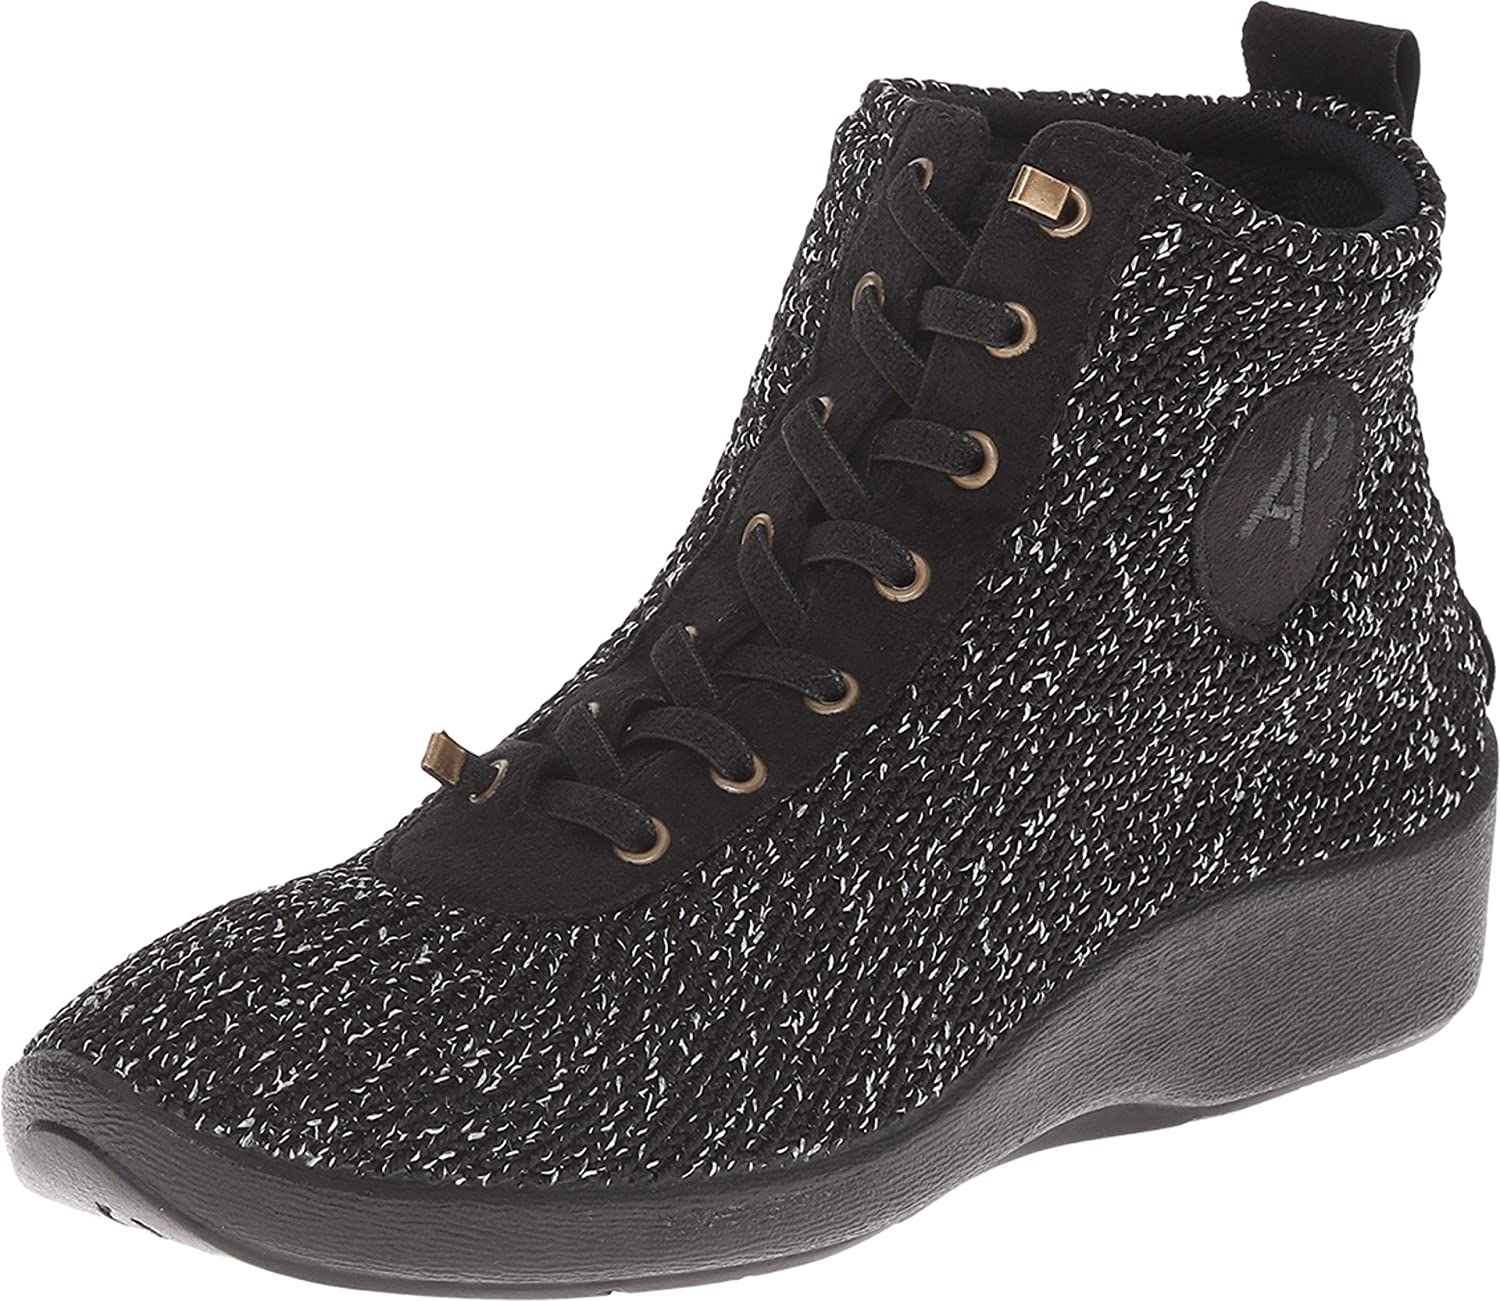 Kalso Earth Shoes Penchant Too B00VWRO8CQ 39 M EU / 8-8.5 B(M) US|Black Starry Nite